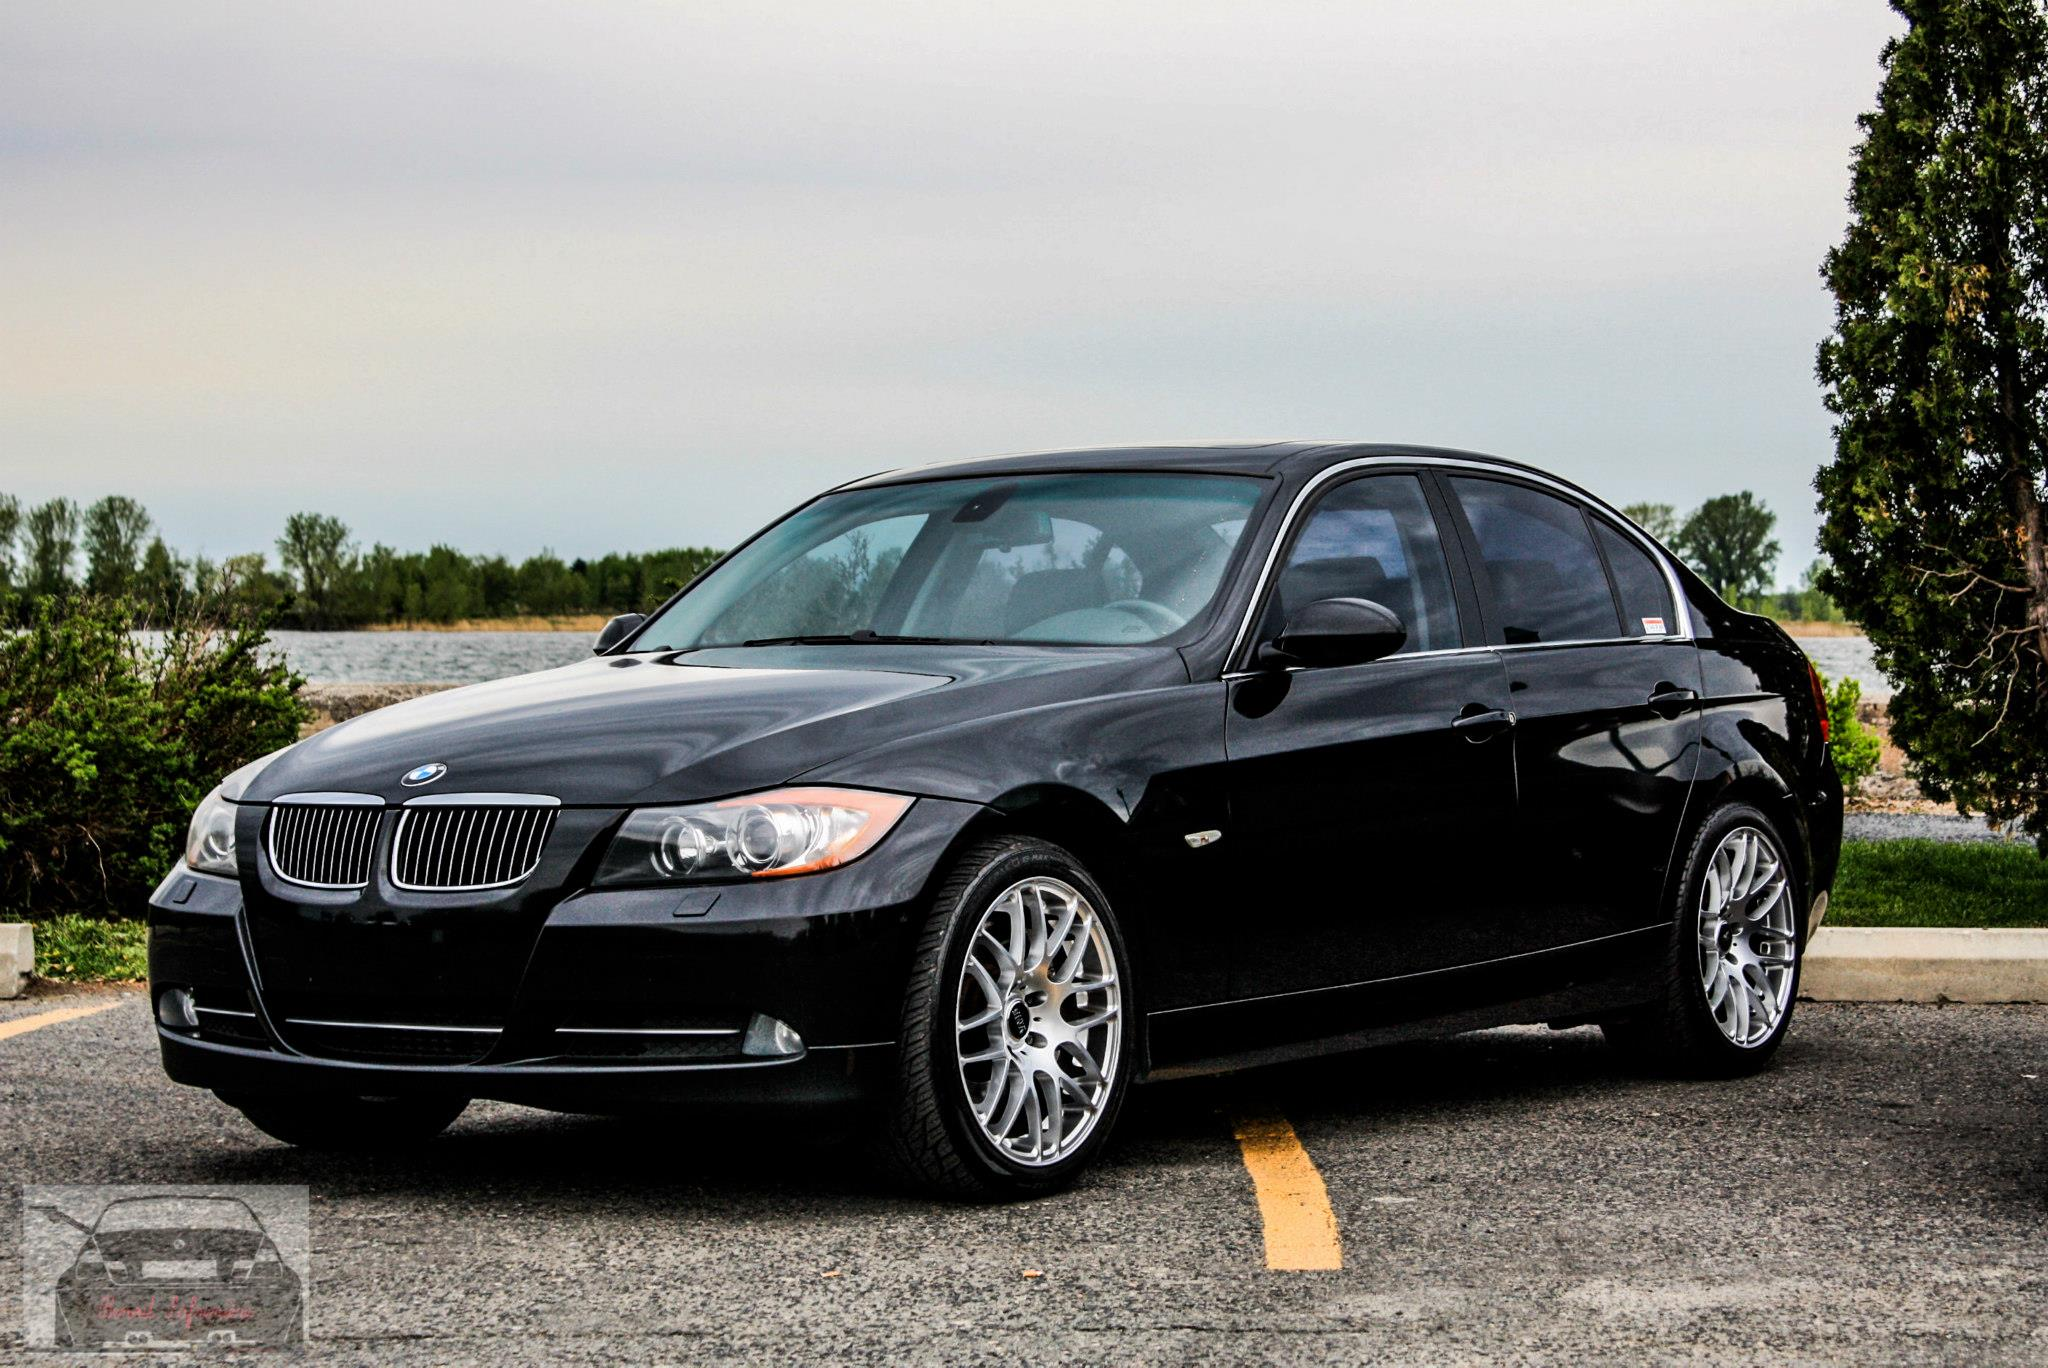 2008 Jet Black Bmw 335xi E90 Pictures Mods Upgrades